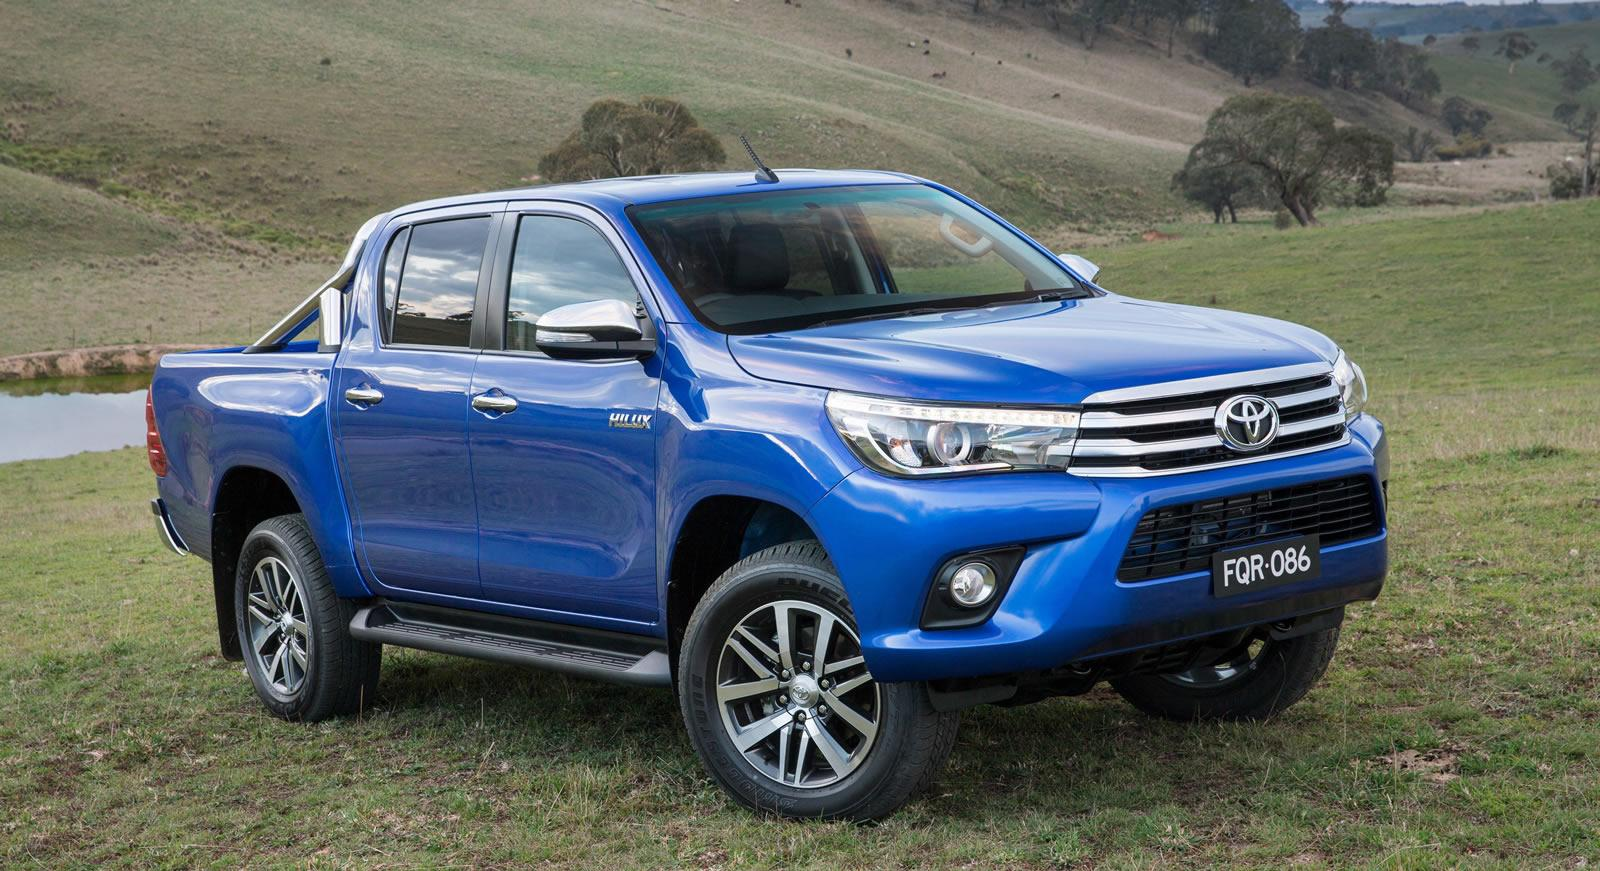 Shop accessori fuoristrada 4Technique HILUX DAL 2016 IN POI